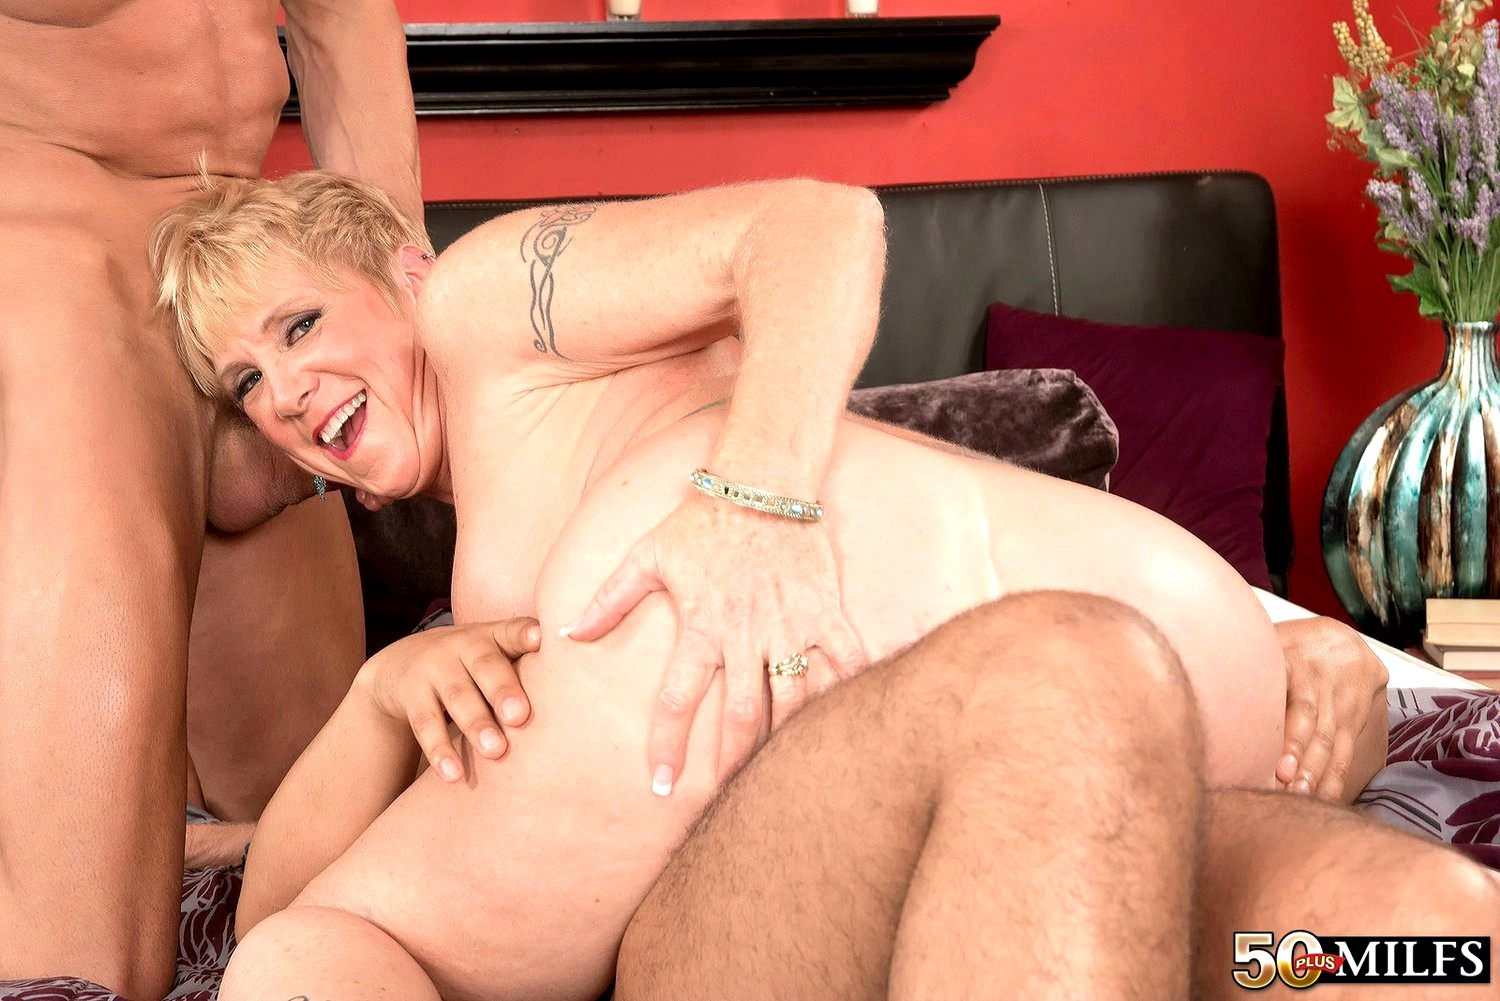 Join told 50 plus milfs honey ray